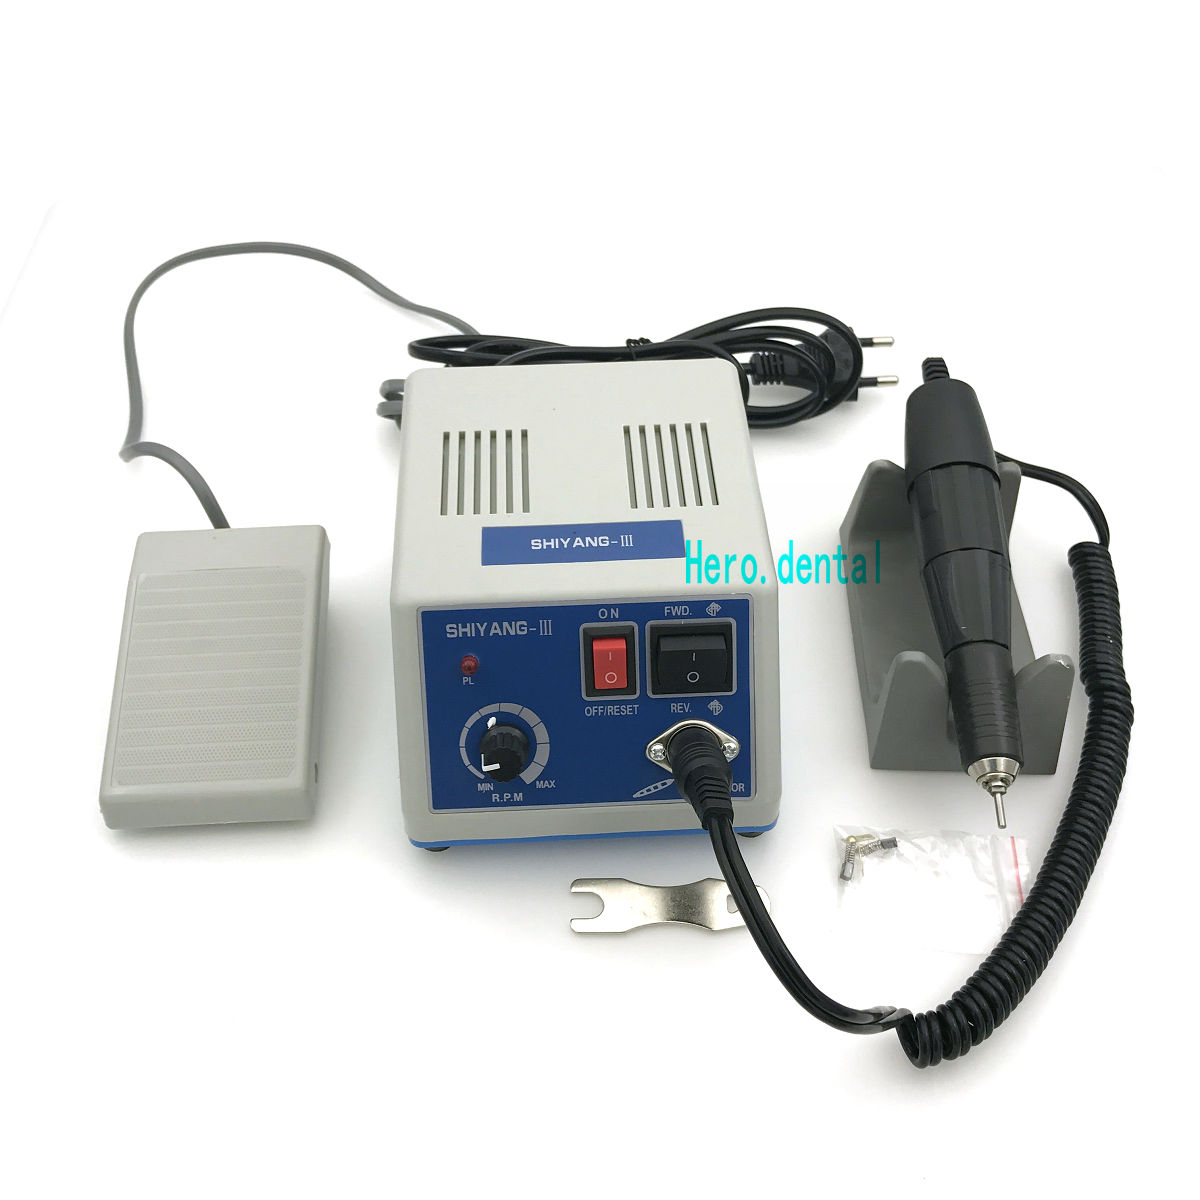 Dental Lab Electric Polishing Micromotor N3 + 35K RPM Motor Handpiece high quality dental finishing and polishing discs polishing strips mandrel set dental supplies resin filling material